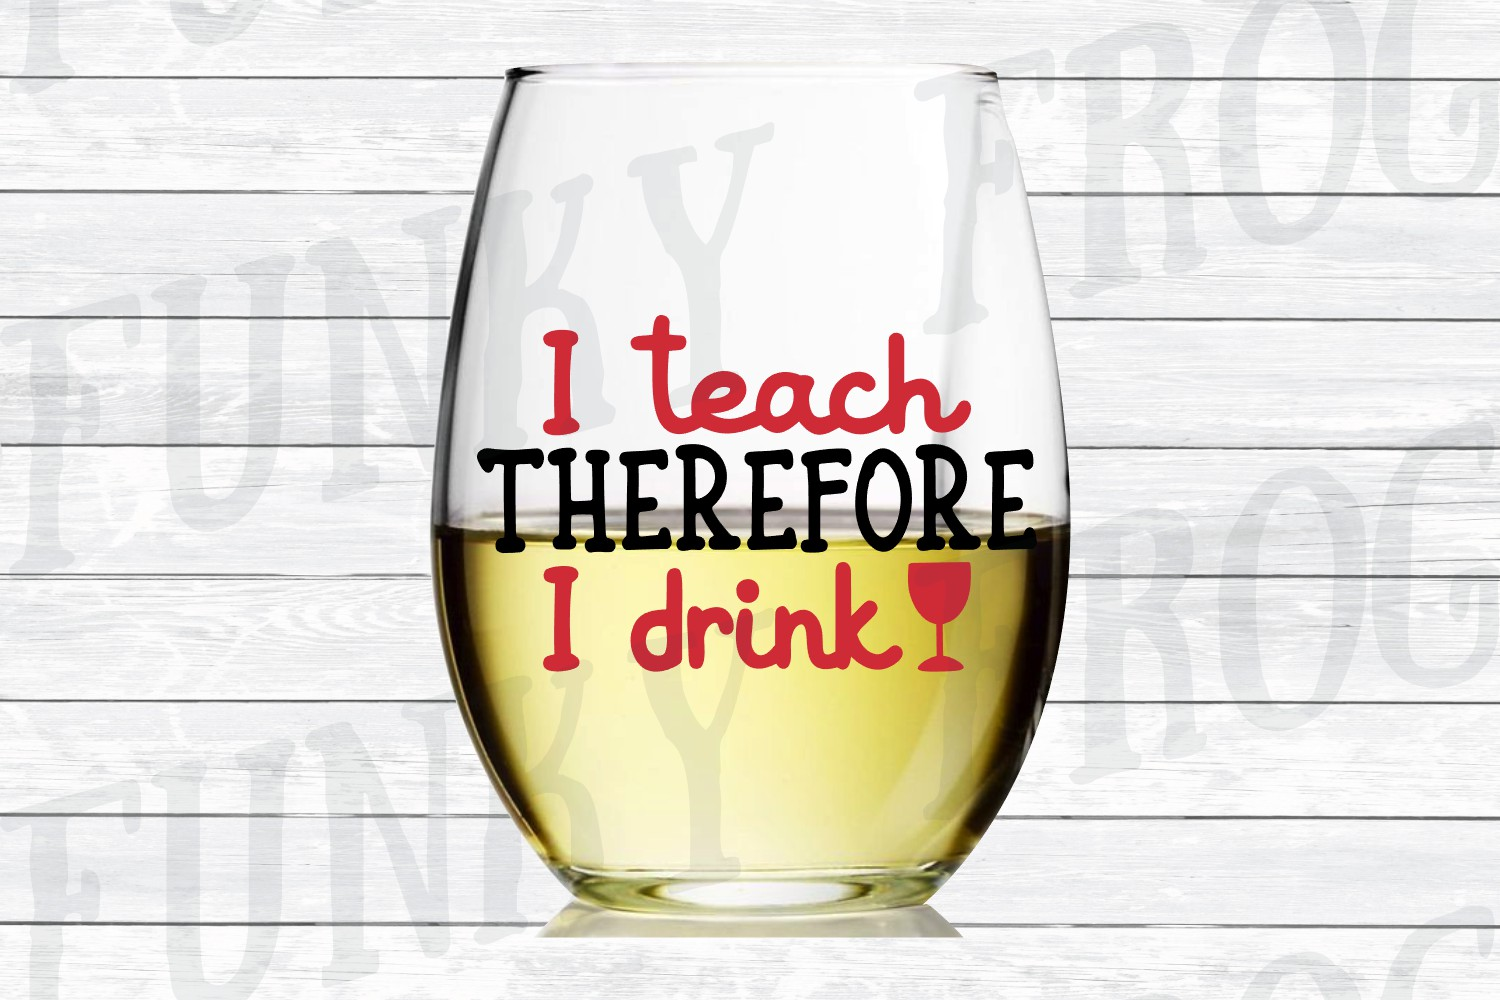 I Teach Therefore I Drink - Teacher SVG Cut File example image 2